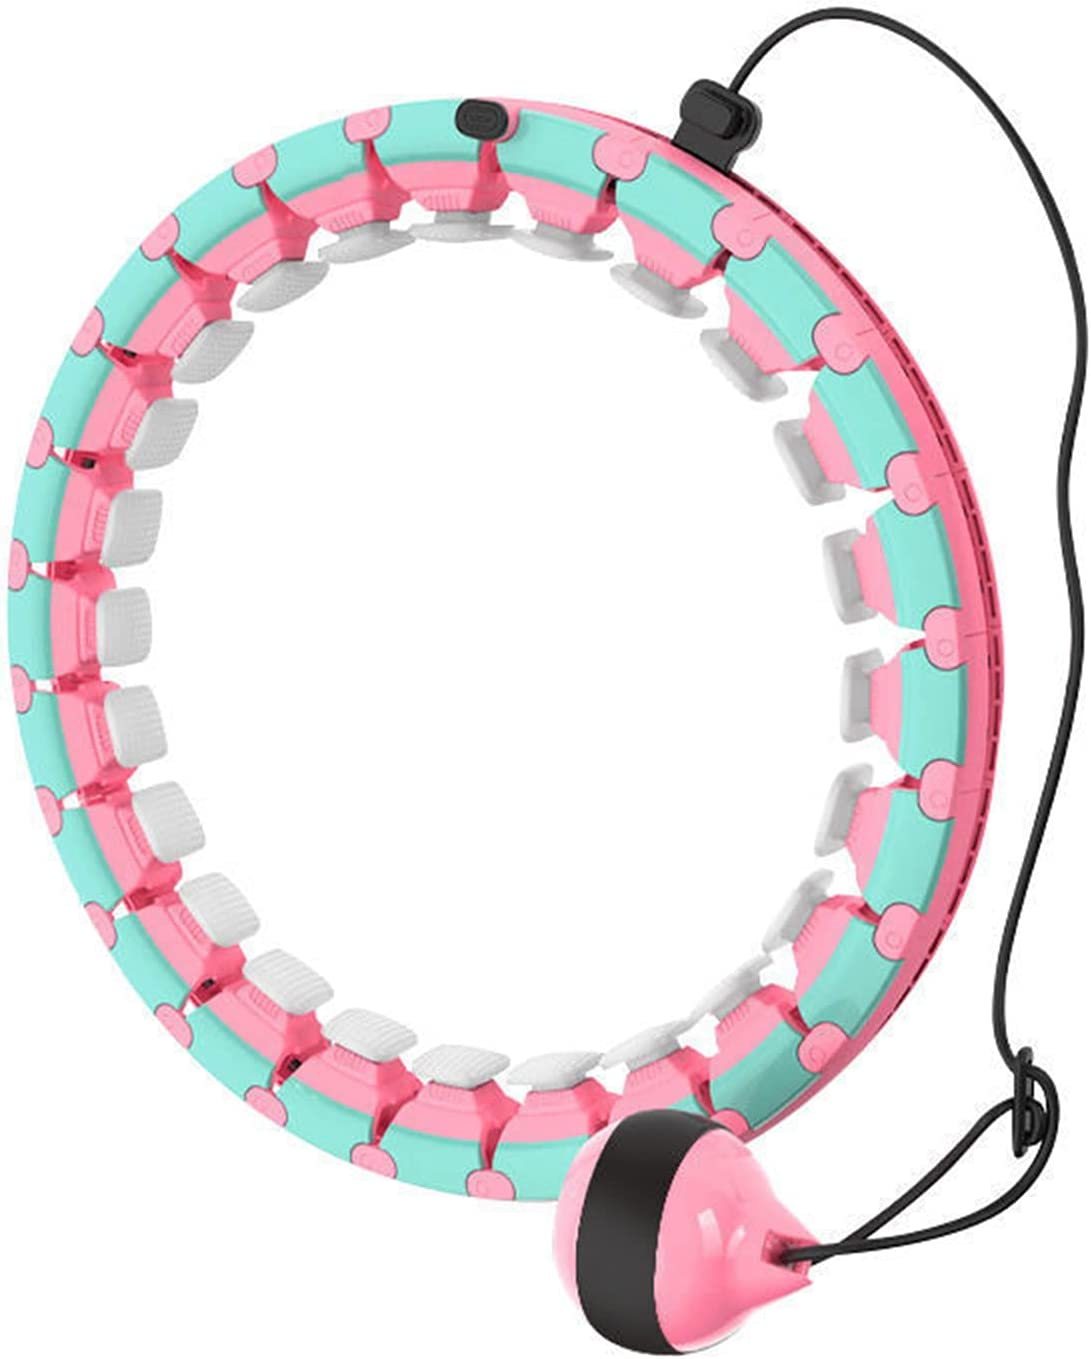 FitSky Hoola Hoop for Adults Direct stock discount Weight Loss Smart Hoo Weighted Very popular Hula